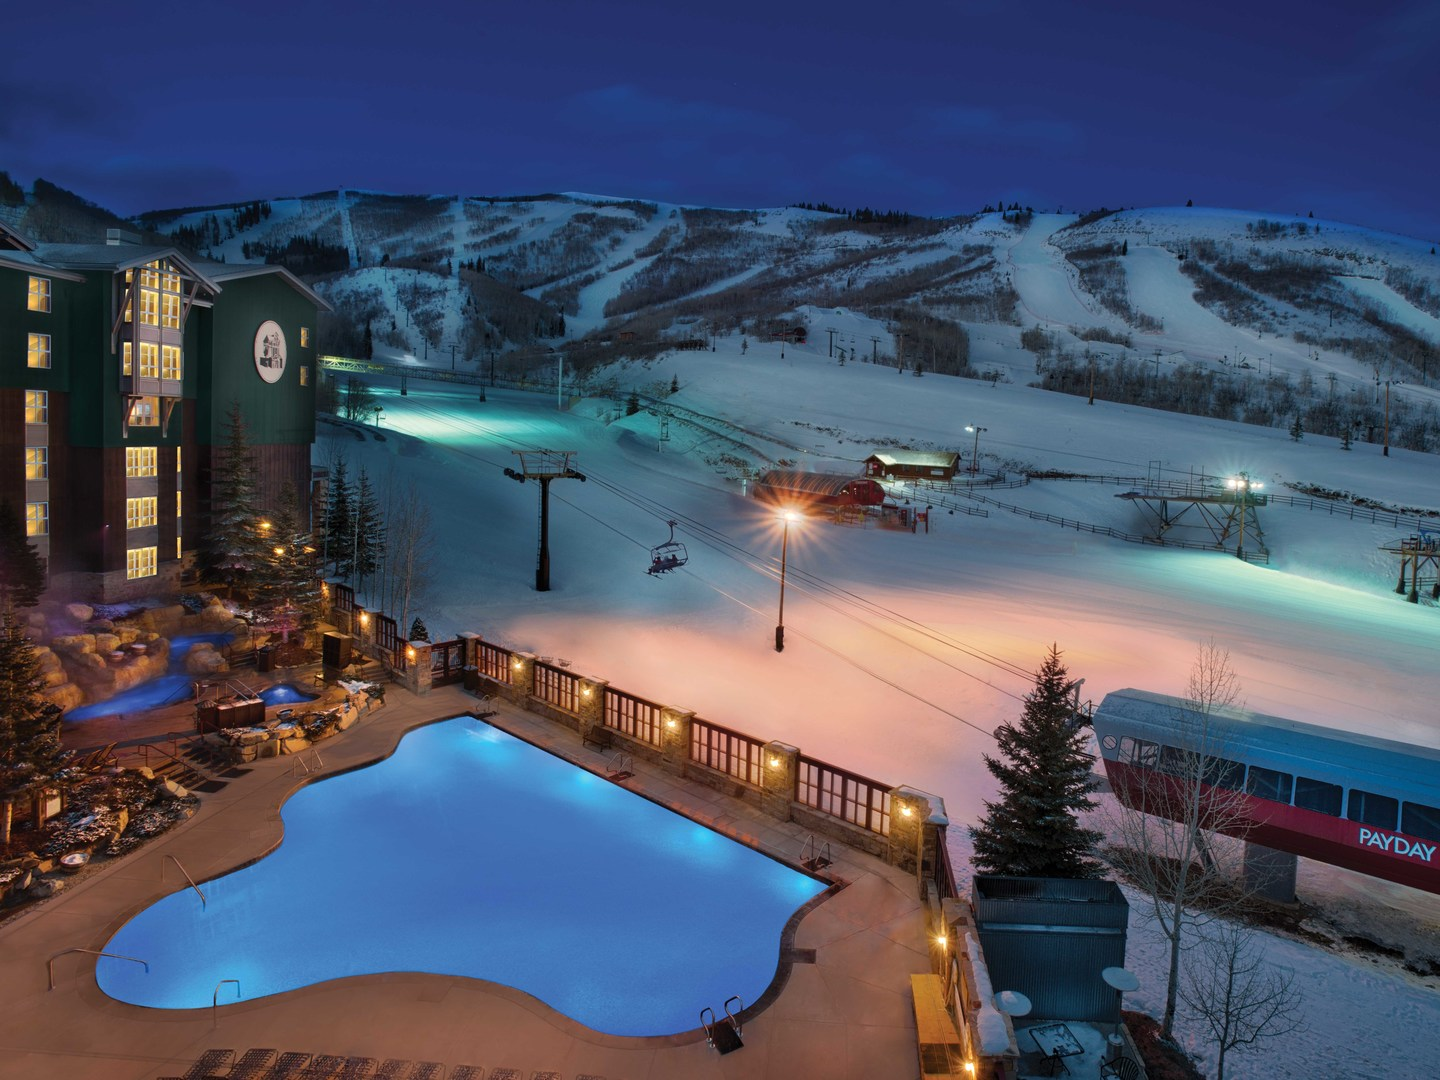 Marriott's MountainSide Pool. Marriott's MountainSide is located in Park City, Utah United States.